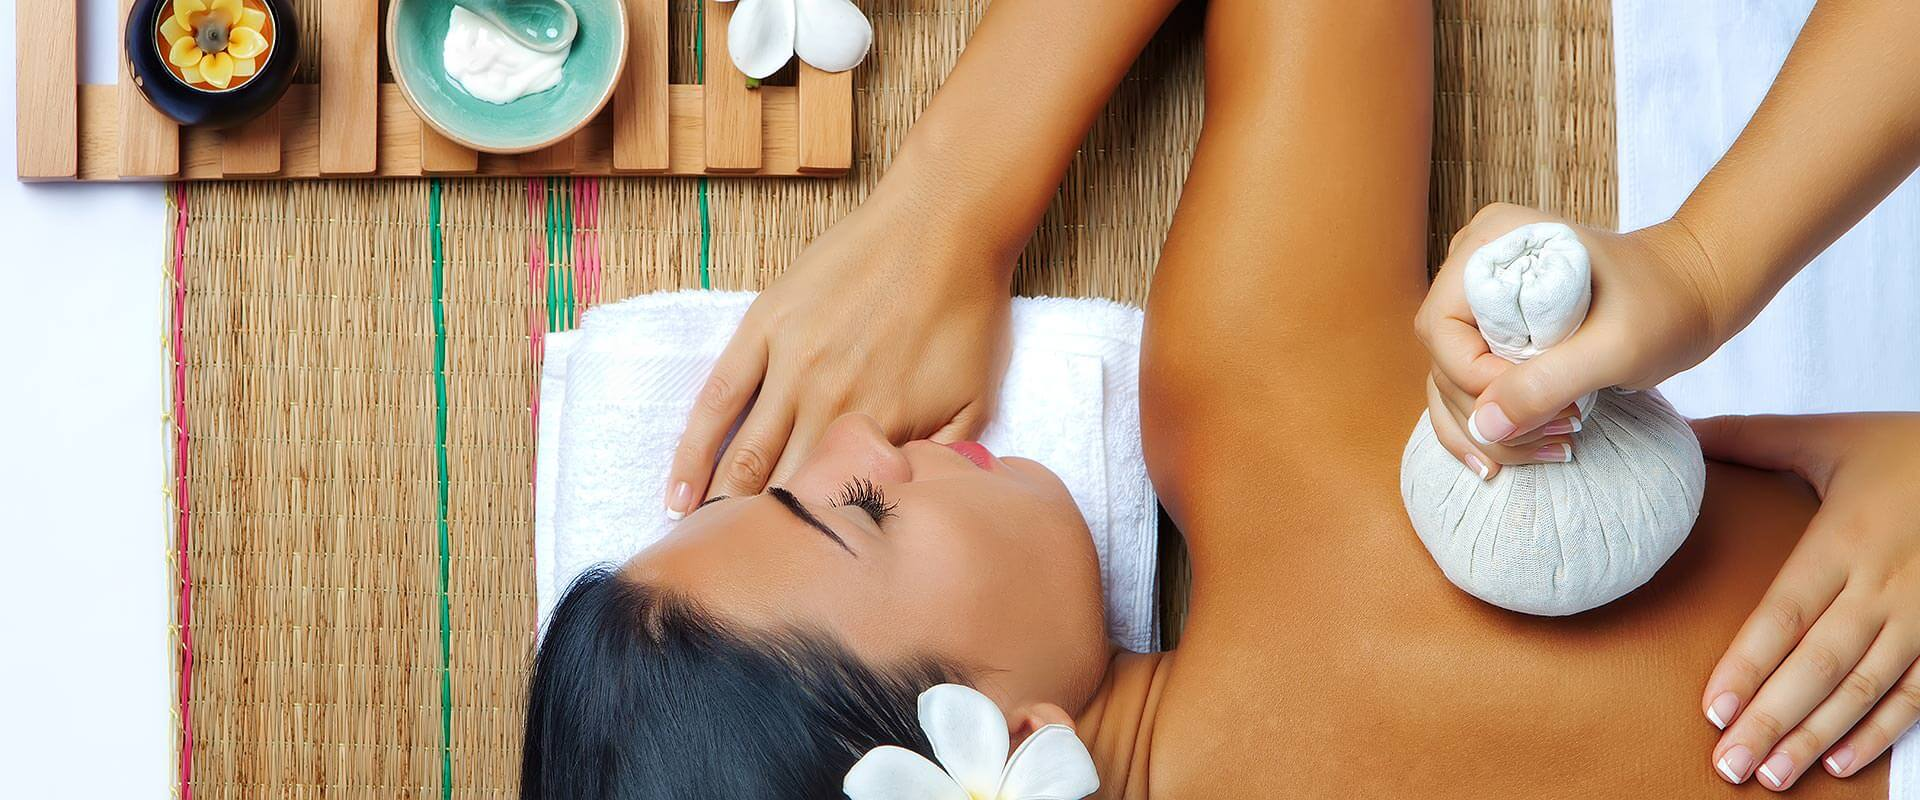 massage thai geneve